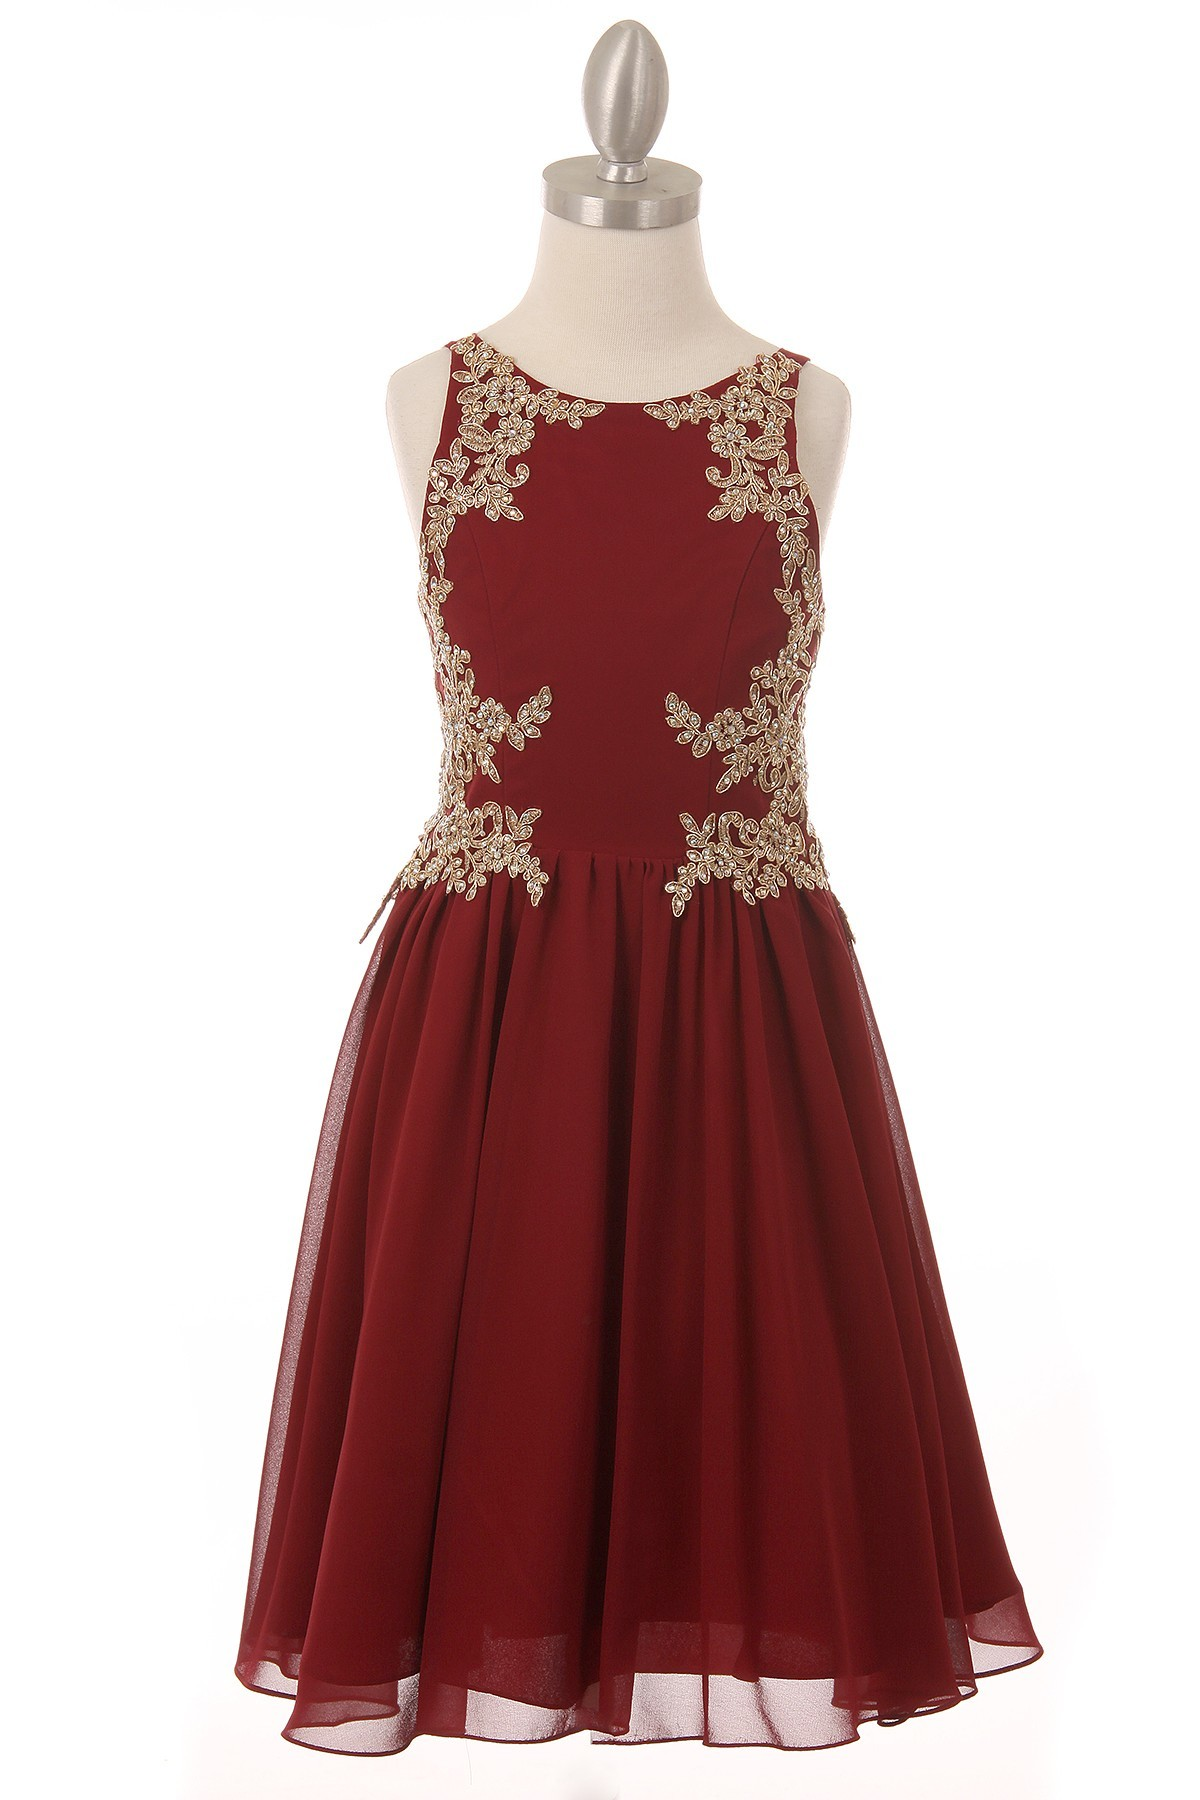 burgundy dress with golden lace